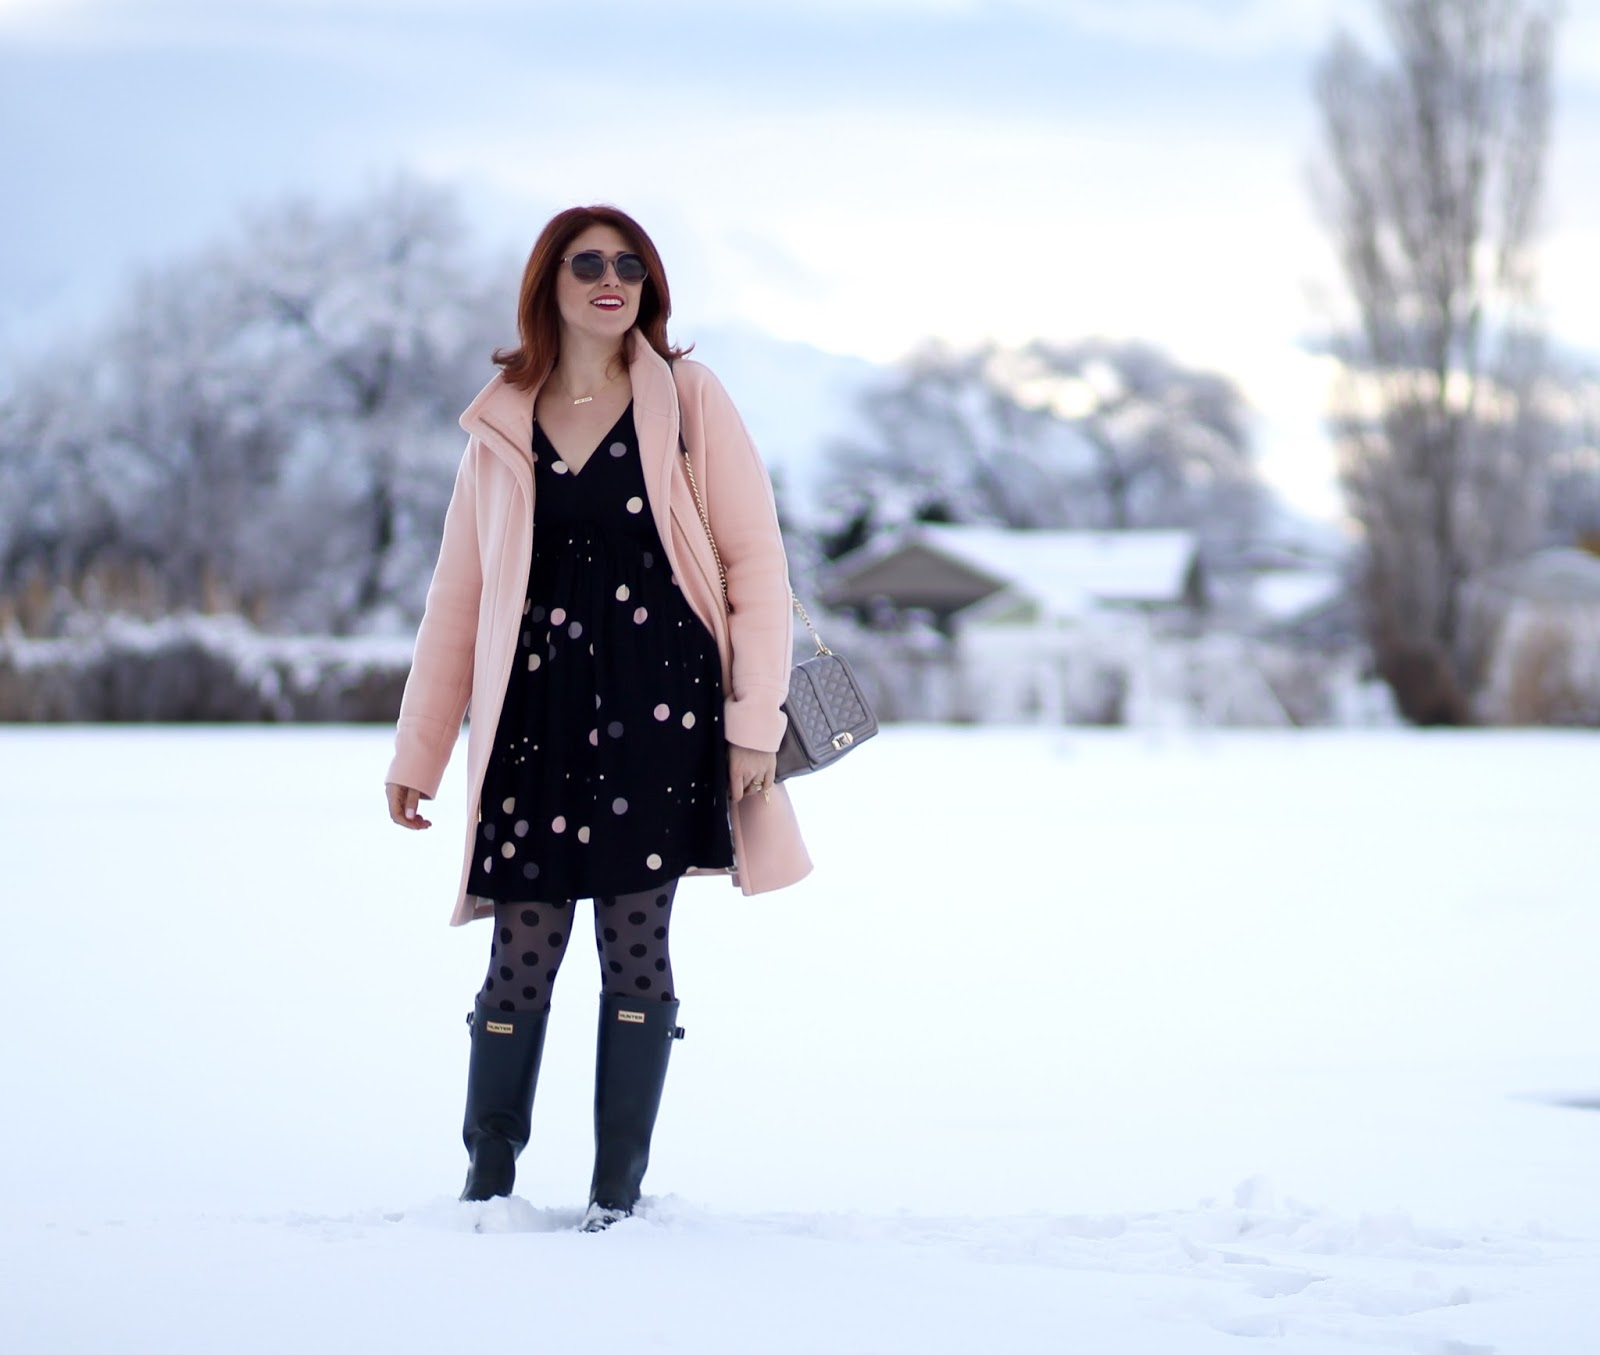 anthropologie felicity dress, polka dot tights, rebecca minkoff love crossbody, cocoon coat in pale ginger, red hair and navy hunter boots make a casual and cute affordable outfit for work or teacher